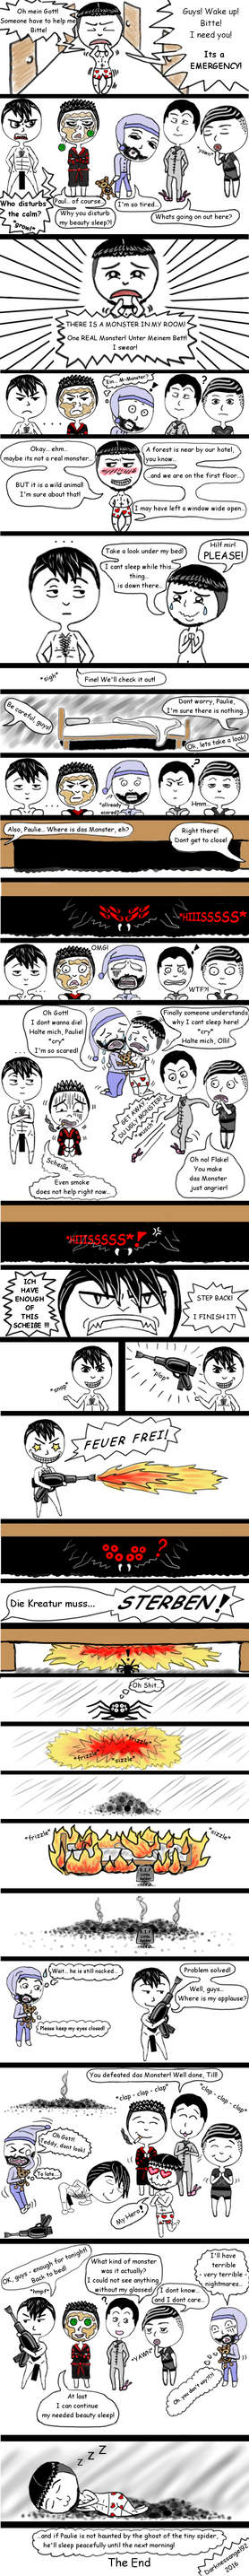 Rammstein Comic - Monster Under The Bed by Darknessangel92